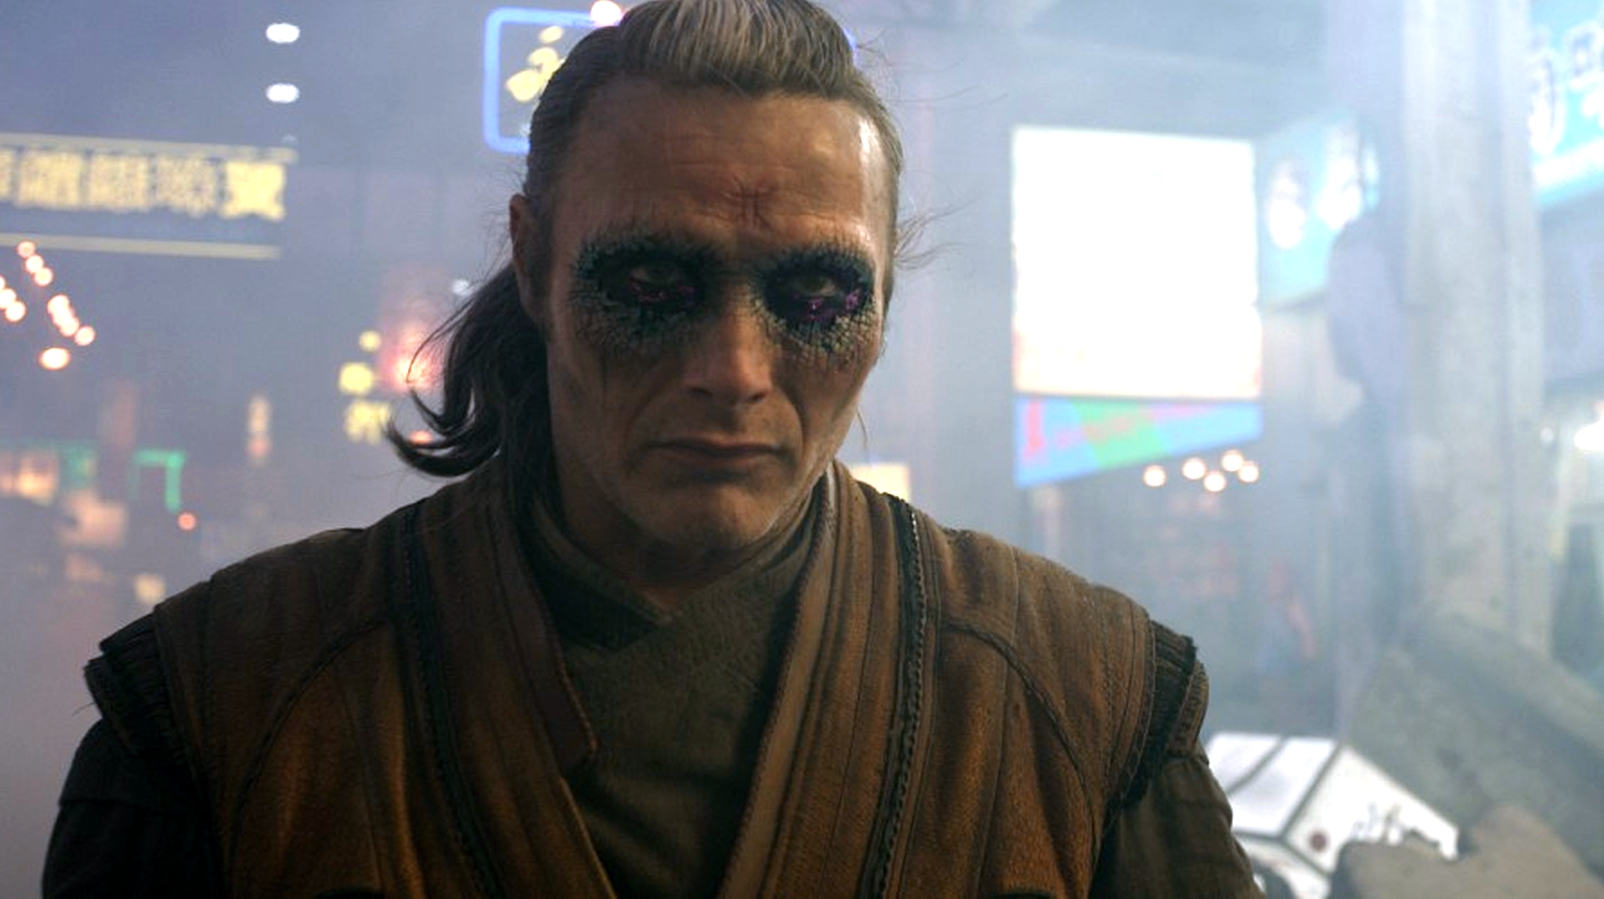 Mads Mikkelsen: 'It's Always Great Fun To Play The Villain'